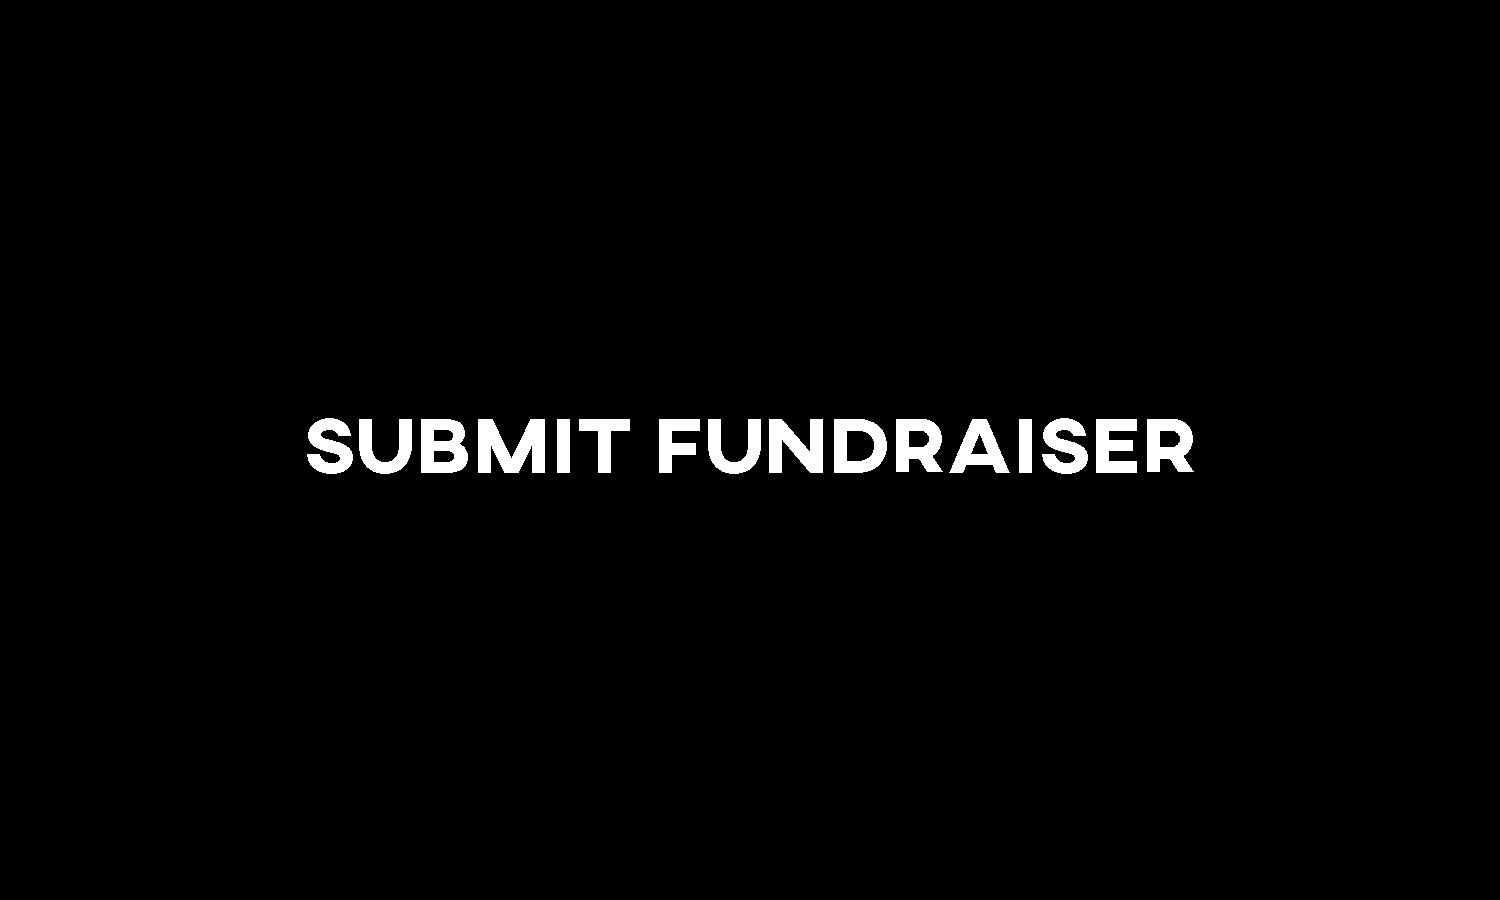 Submit Fundraiser